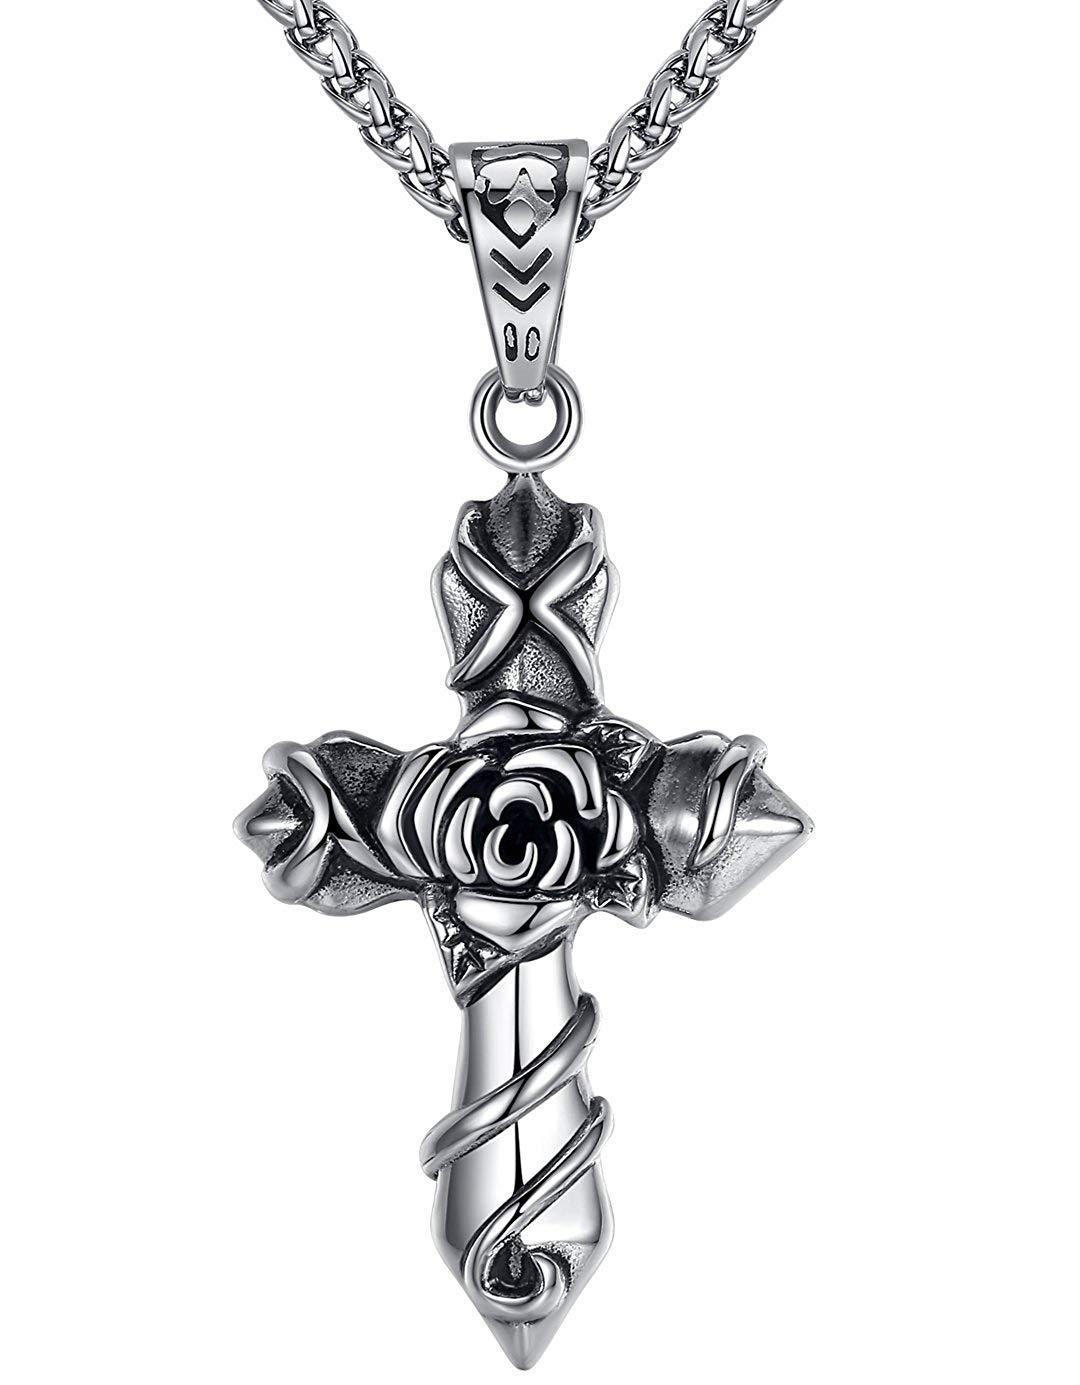 "Aoiy Men's Stainless Steel Rose Cross Pendant Necklace, 24"" Link Chain, aap099"